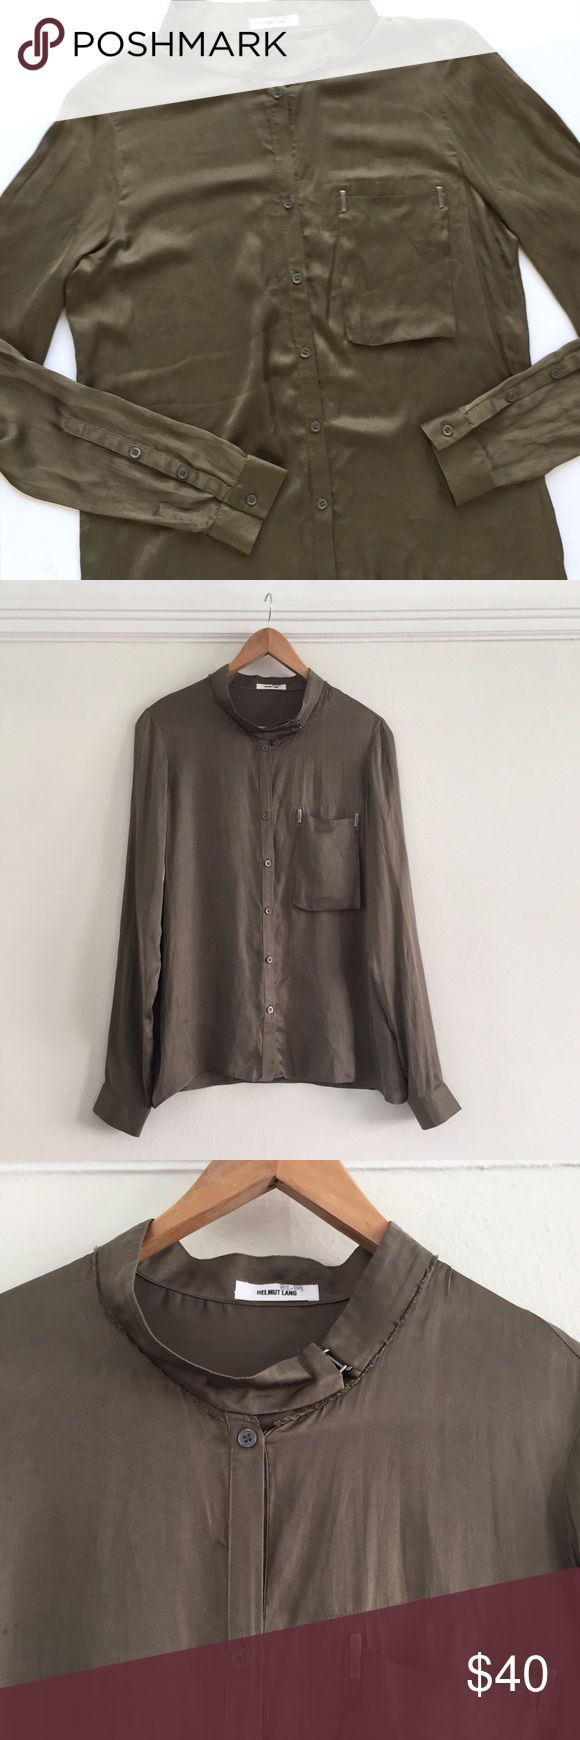 Helmut Lang Shirt Blouse Worn but in a good condition. Beautiful unique details. No size tag, but this is definitely an XS or a 0. Will look great on someone very slim/petite Helmut Lang Tops Button Down Shirts